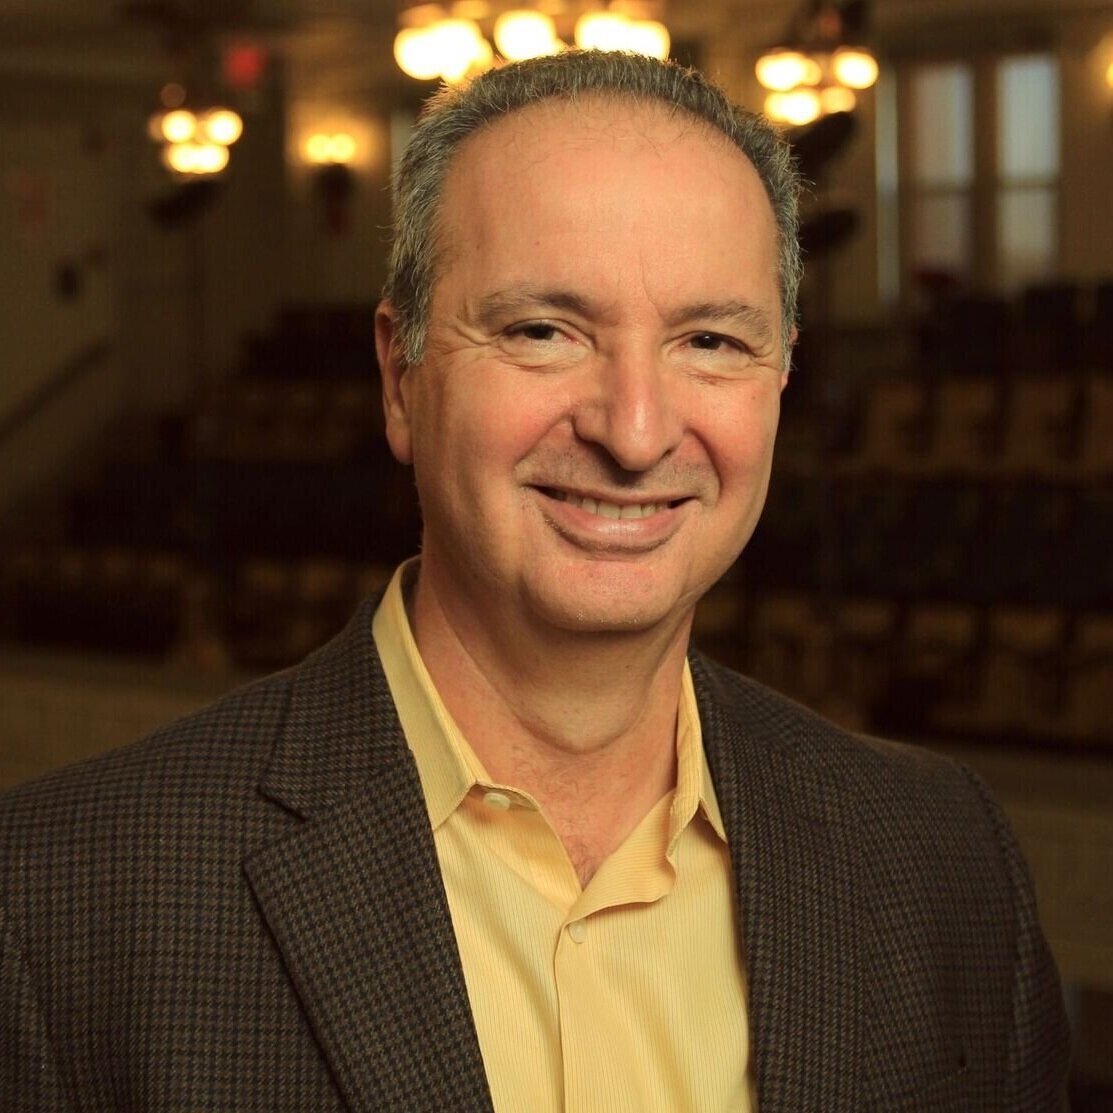 Pete Scazzero - After leading New Life Fellowship Church for 26 years, Pete co-founded Emotionally Healthy Discipleship, a groundbreaking ministry that moves the church forward by slowing the church down in order to multiply deeply changed leaders and disciples.